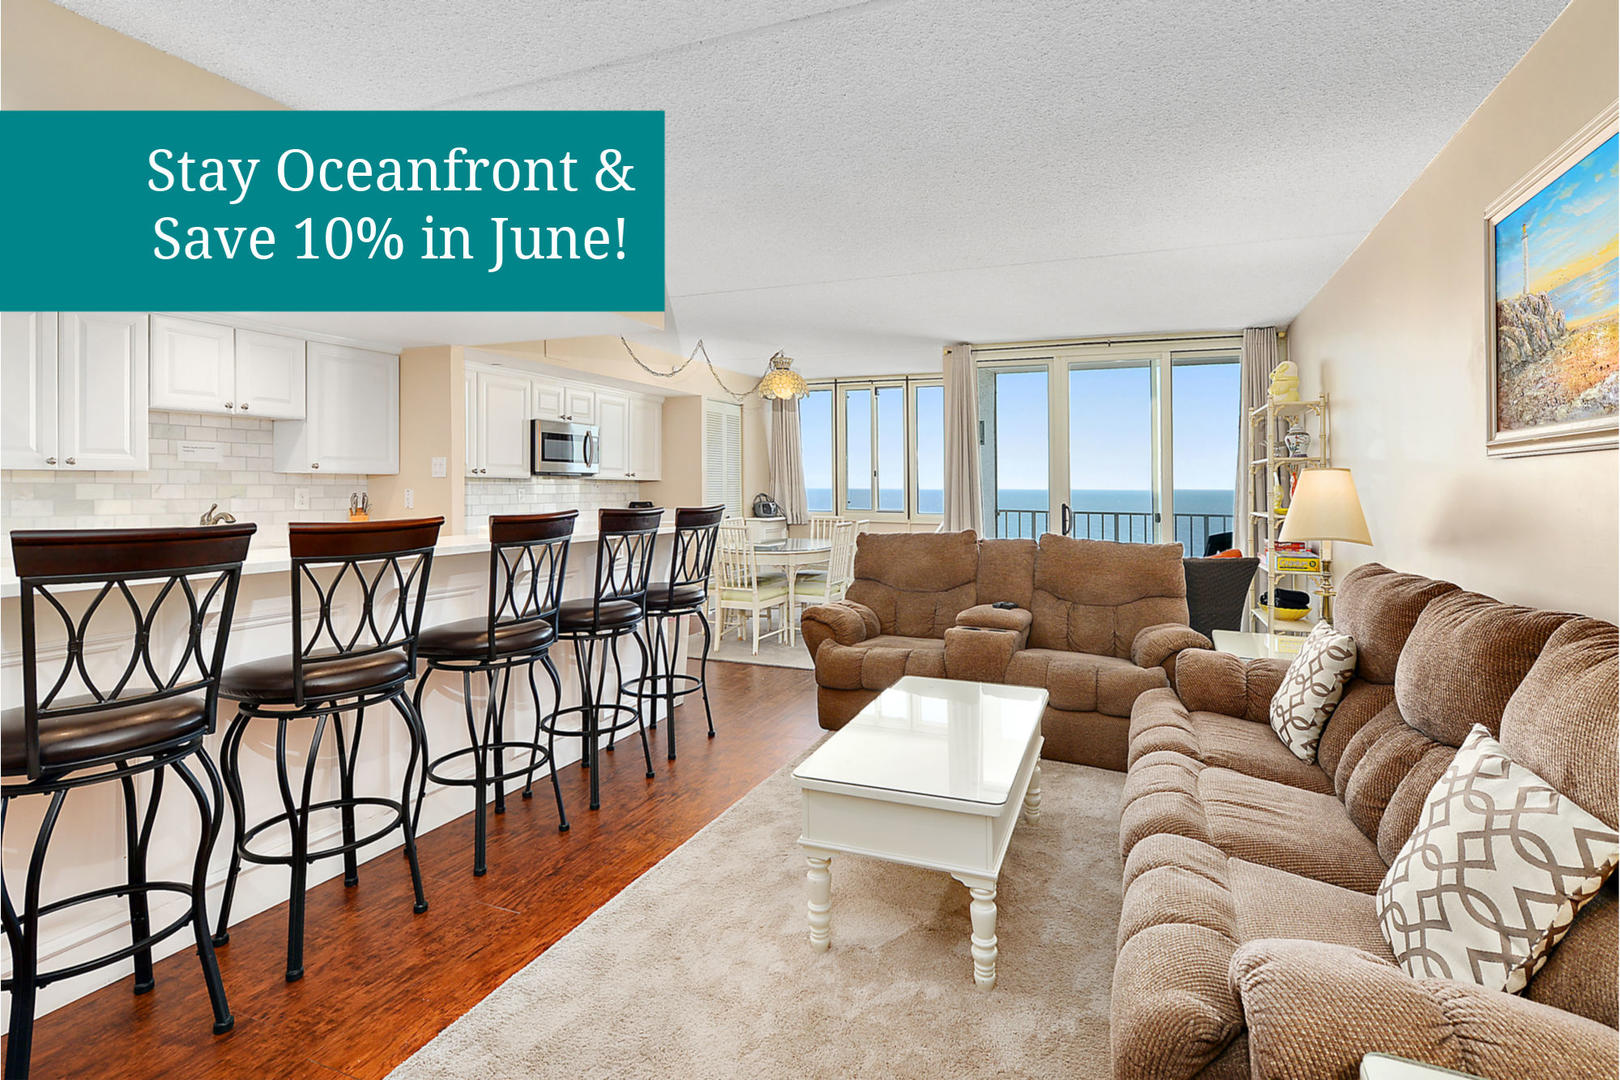 Rates Reduced in June!